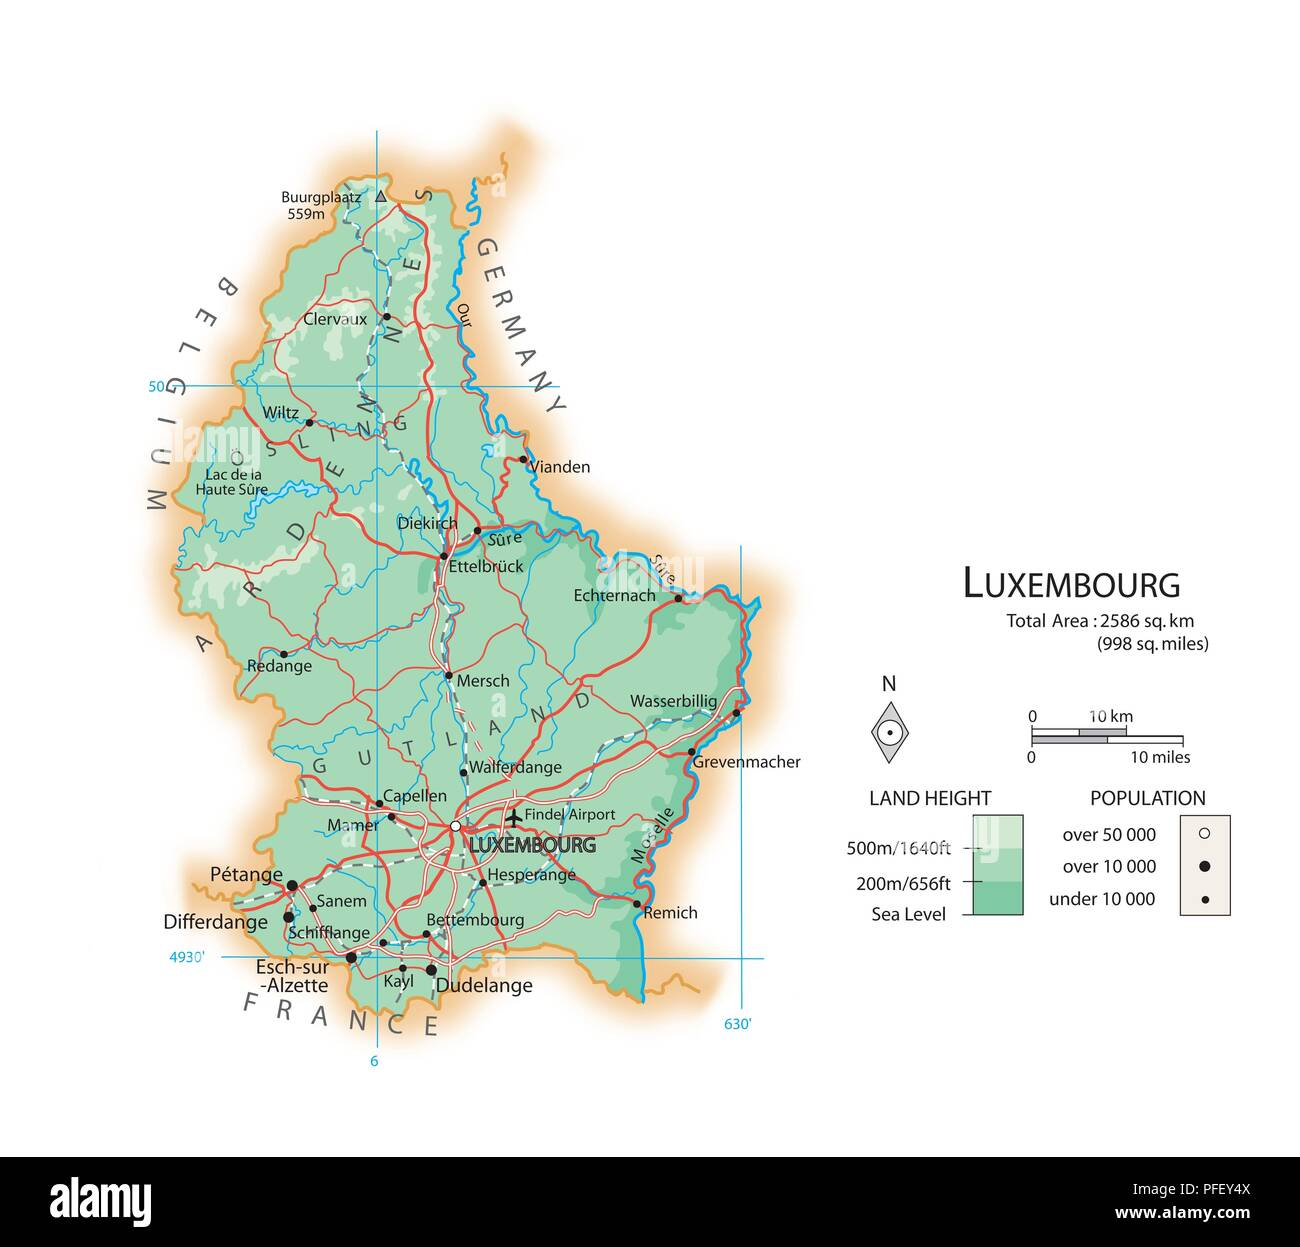 Map of Luxembourg Stock Photo: 216072890 - Alamy